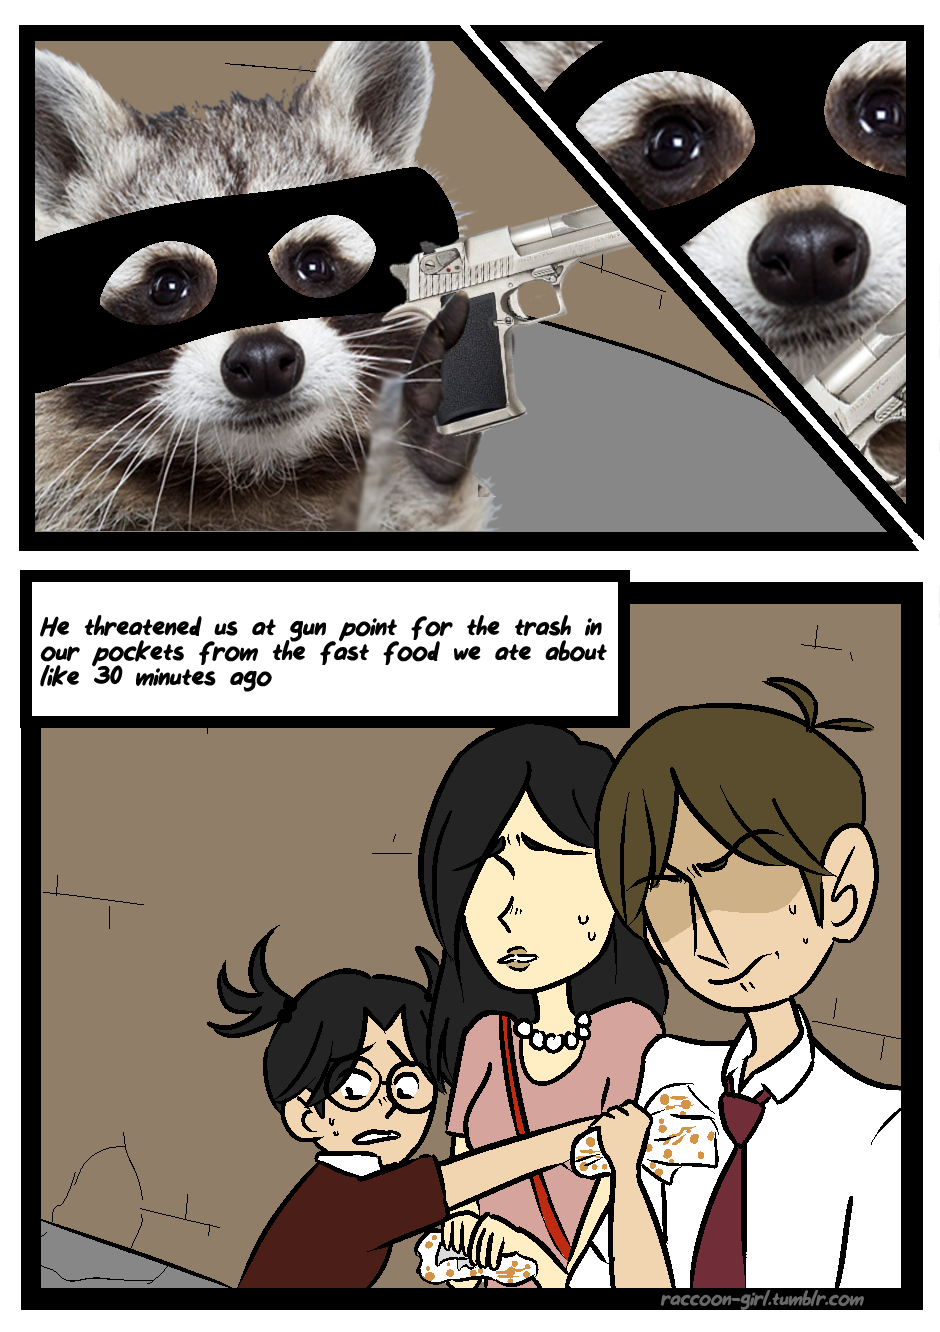 raccoongirl-page2